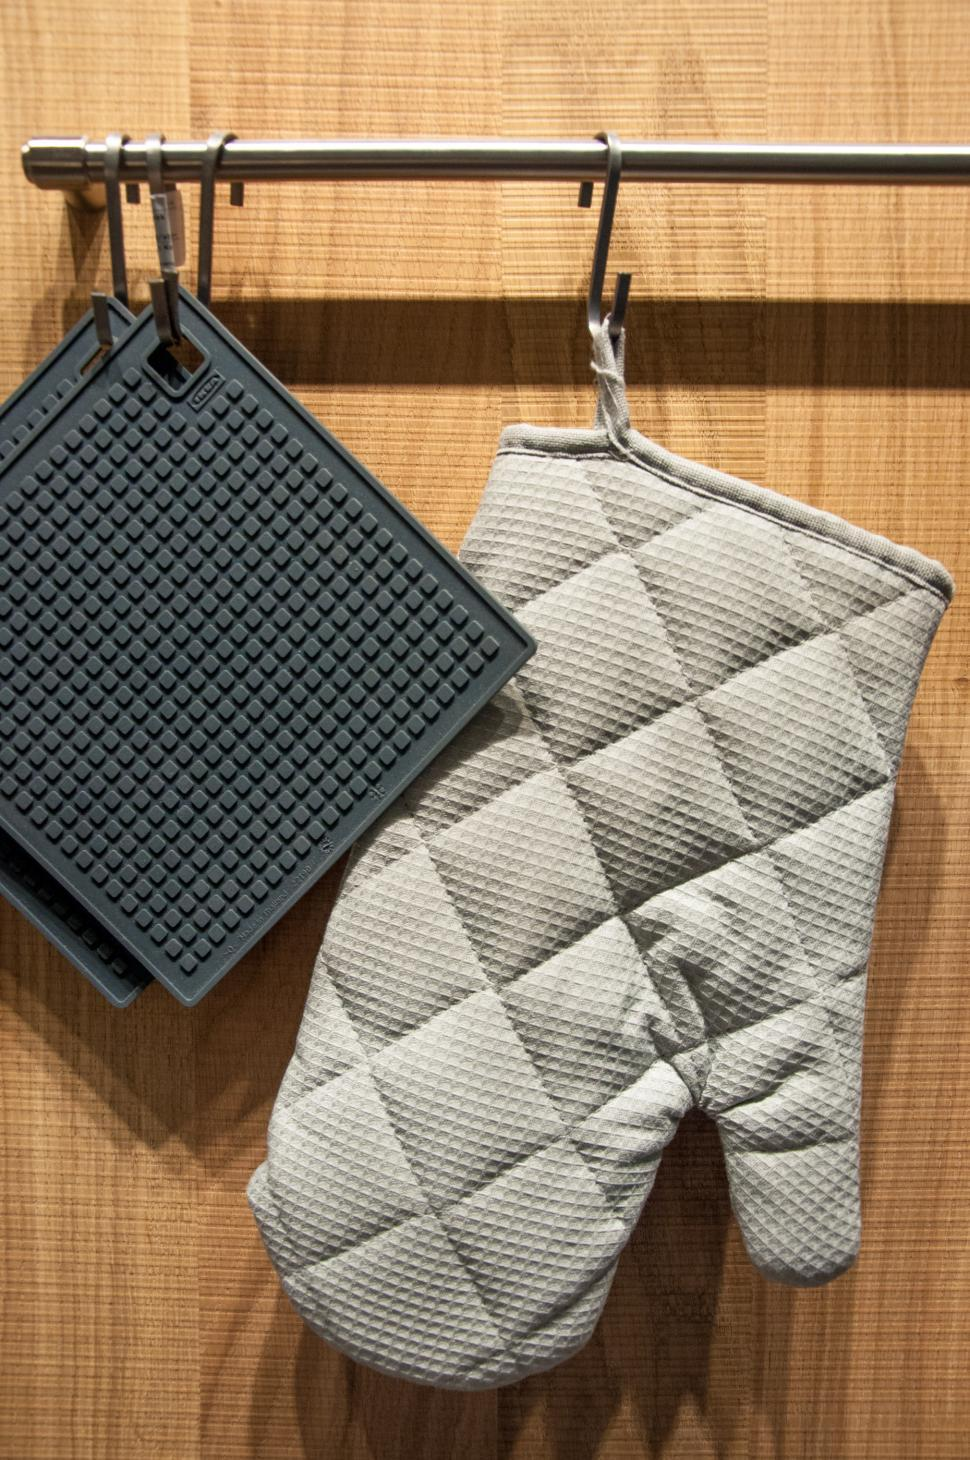 Download Free Stock HD Photo of Oven gloves Online